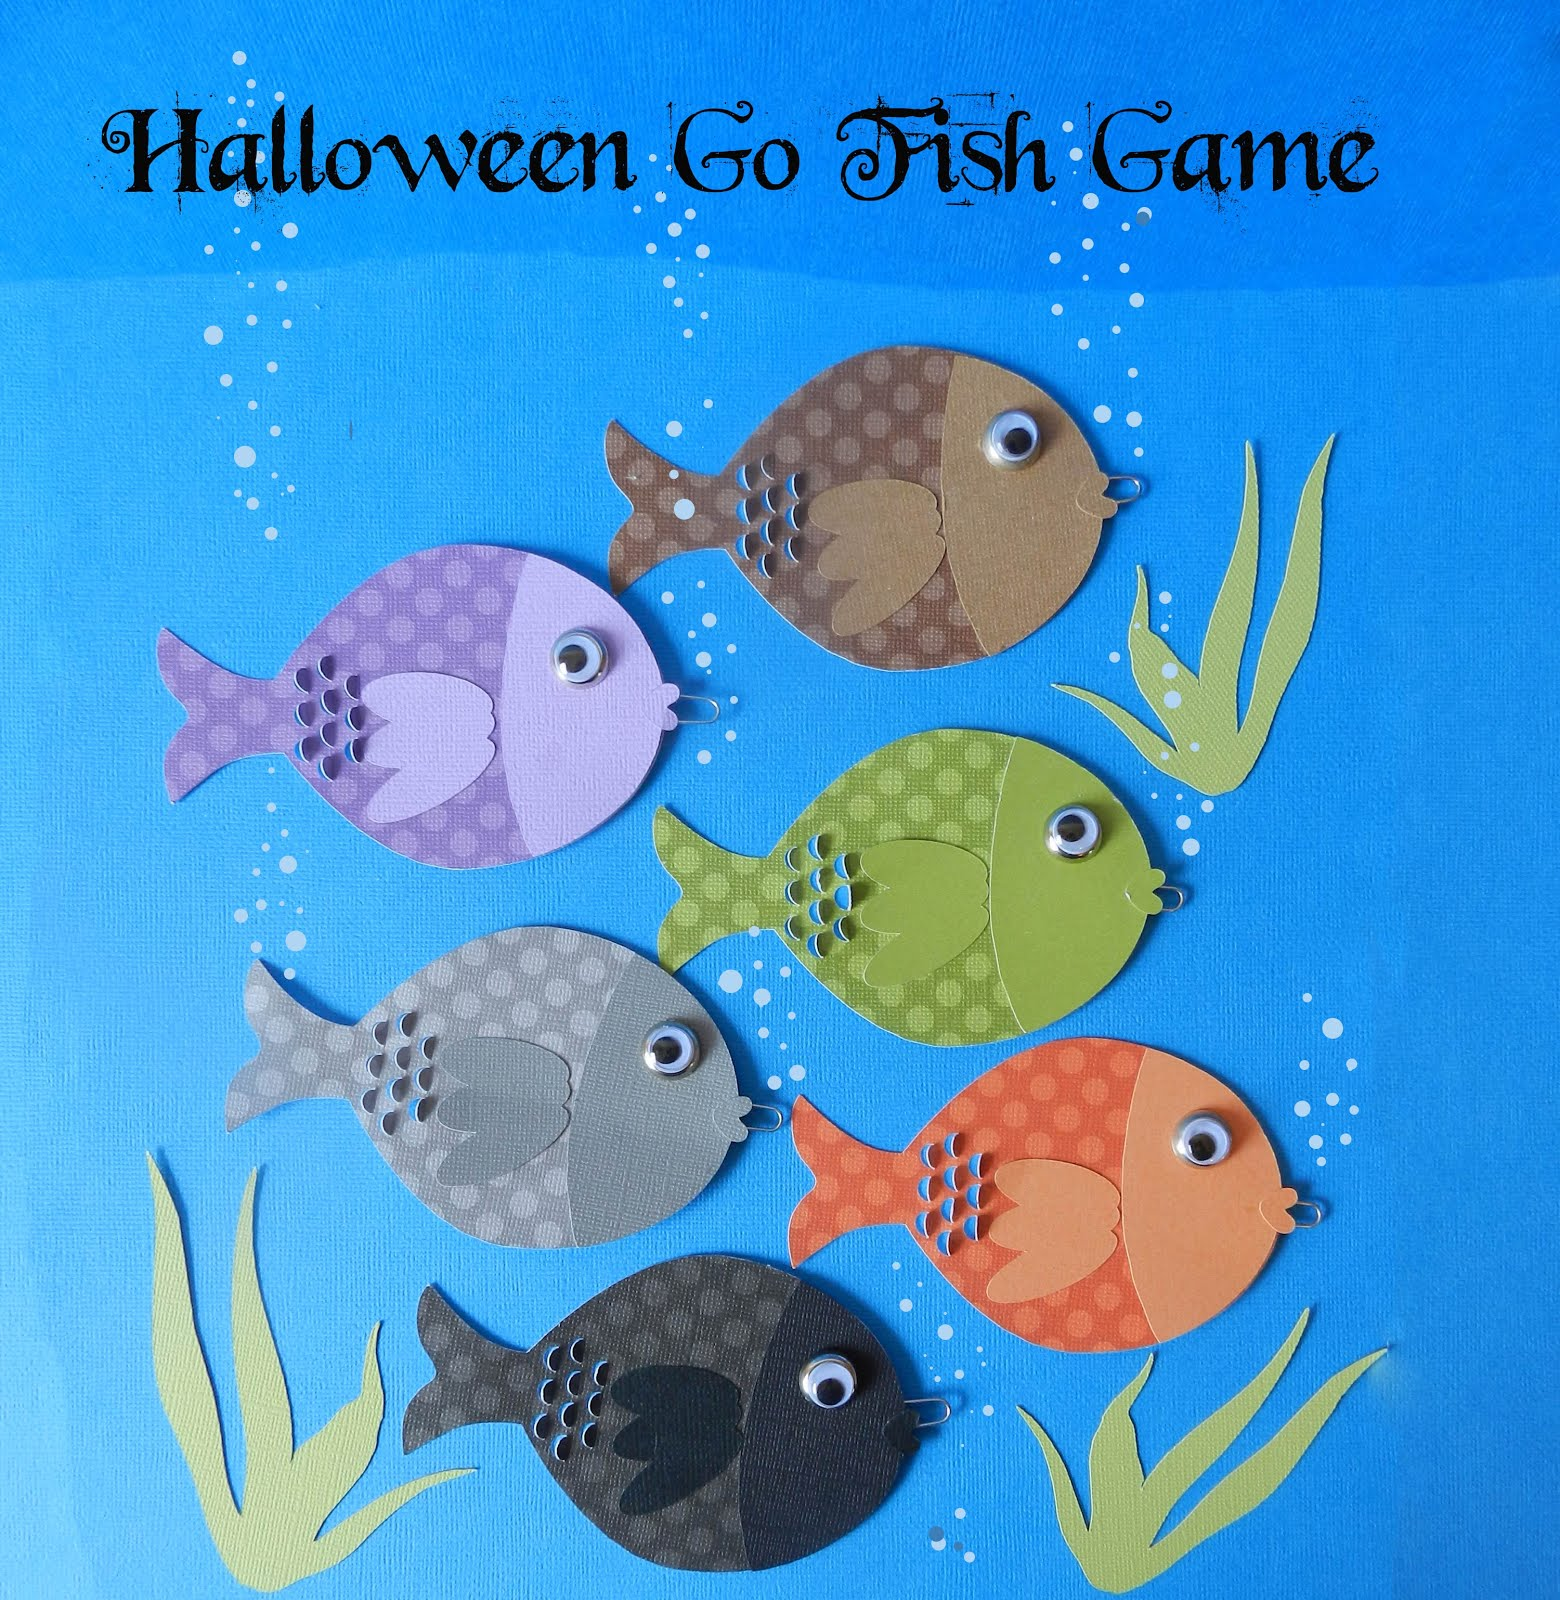 Need a Fun Halloween Party Game? This is It!